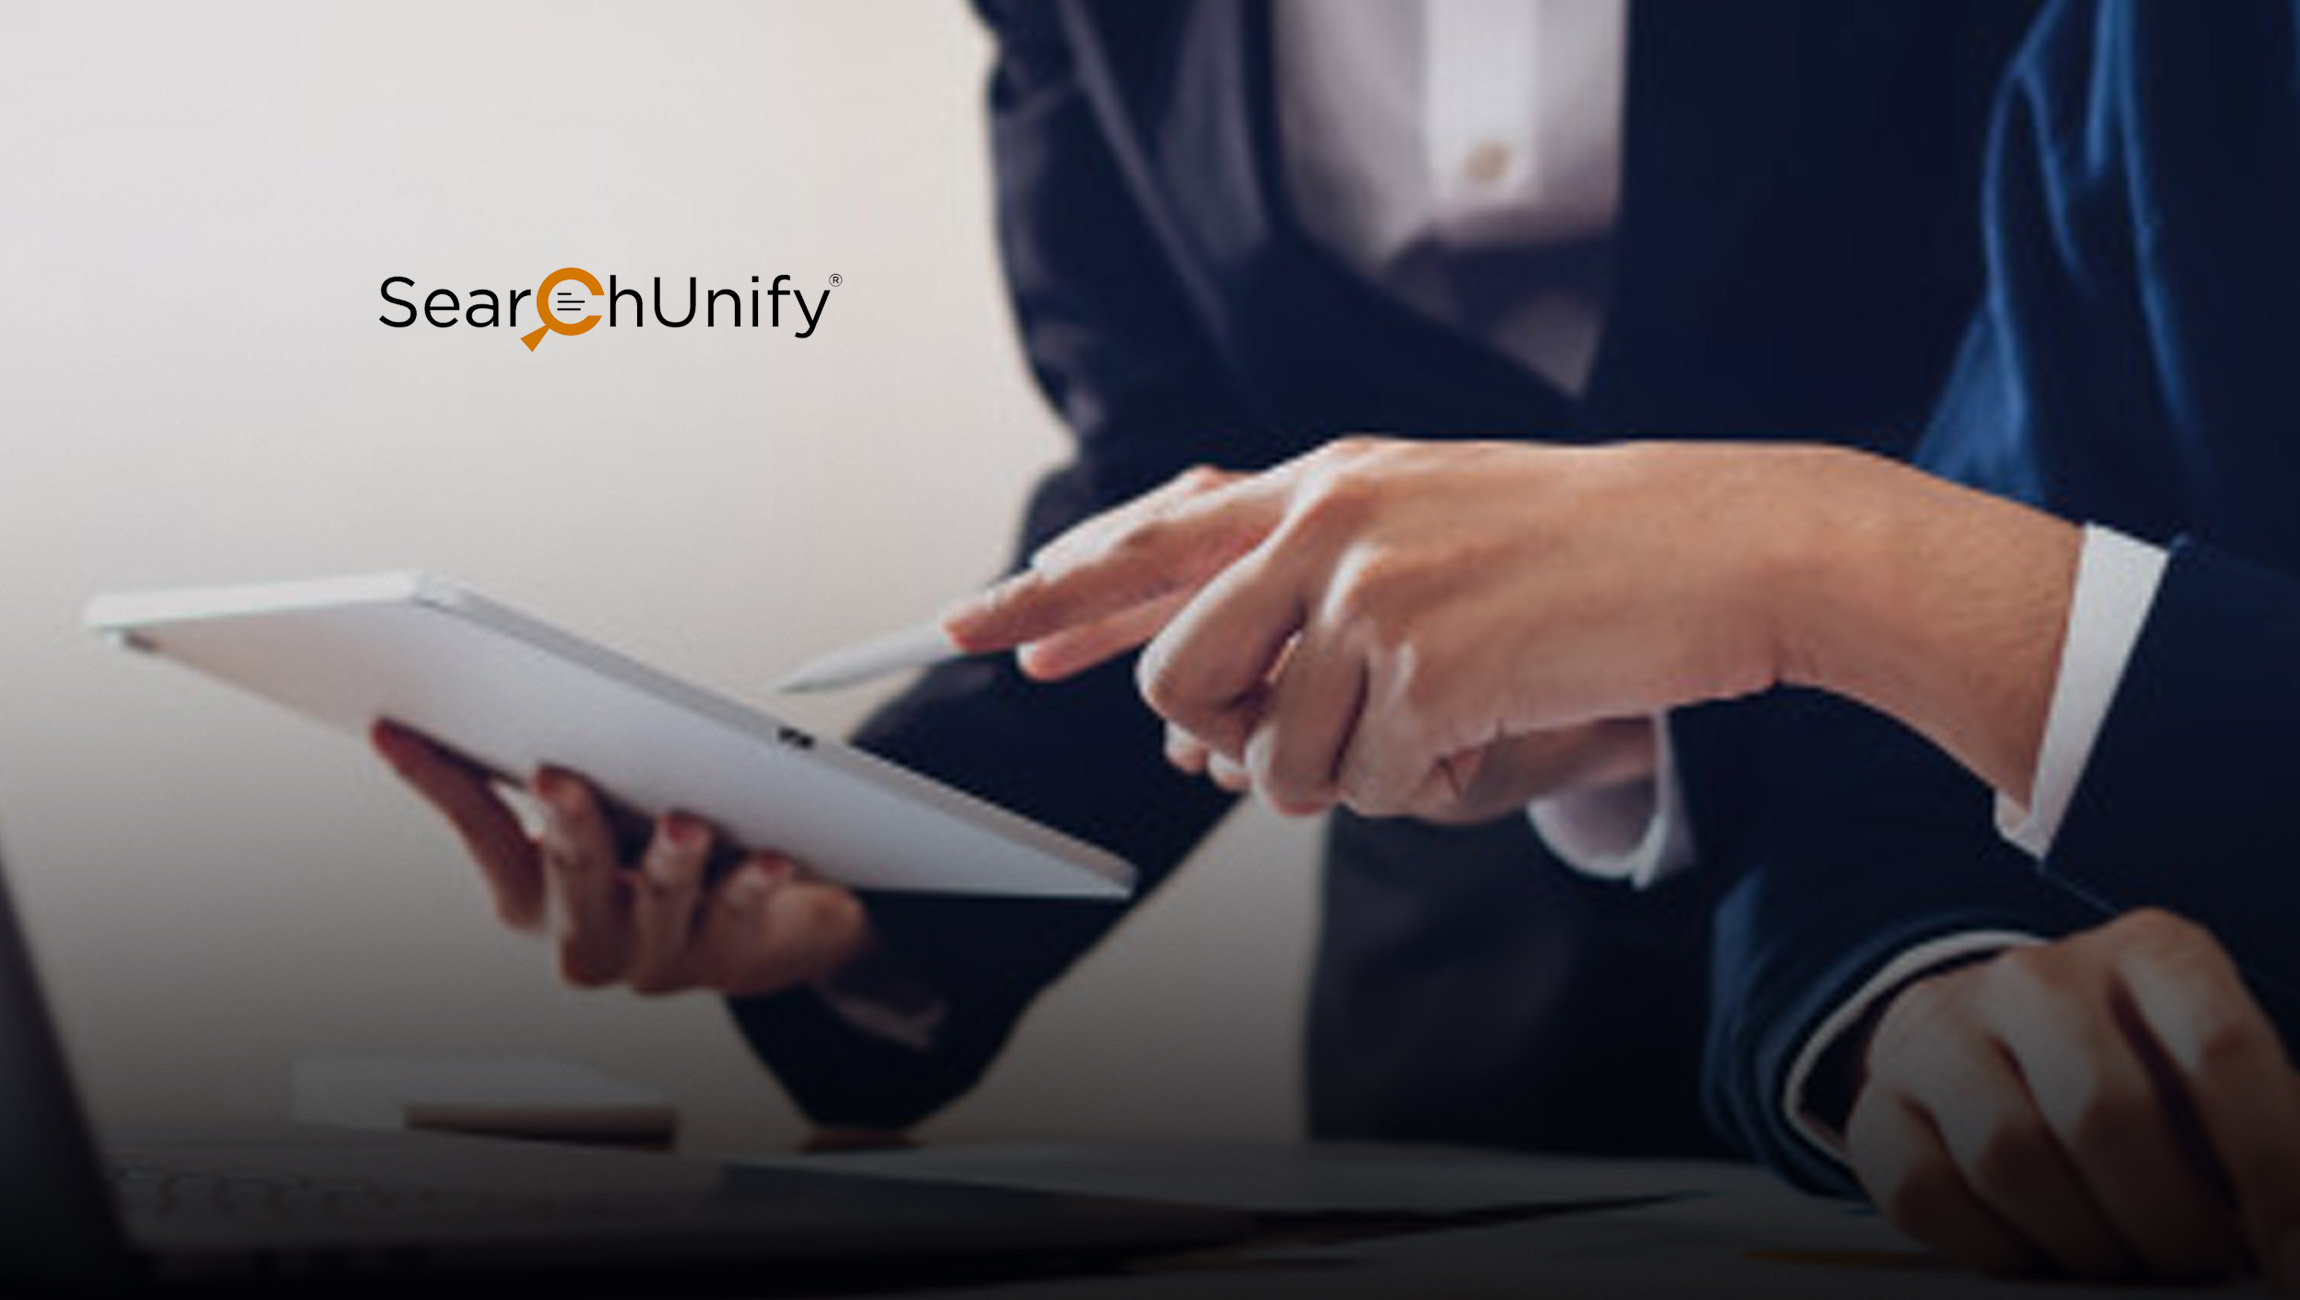 SearchUnify Announces Mamba '21 to Power Next-Gen Support & Self-Service Experiences with Its Cognitive Search Platform & Suite of Apps